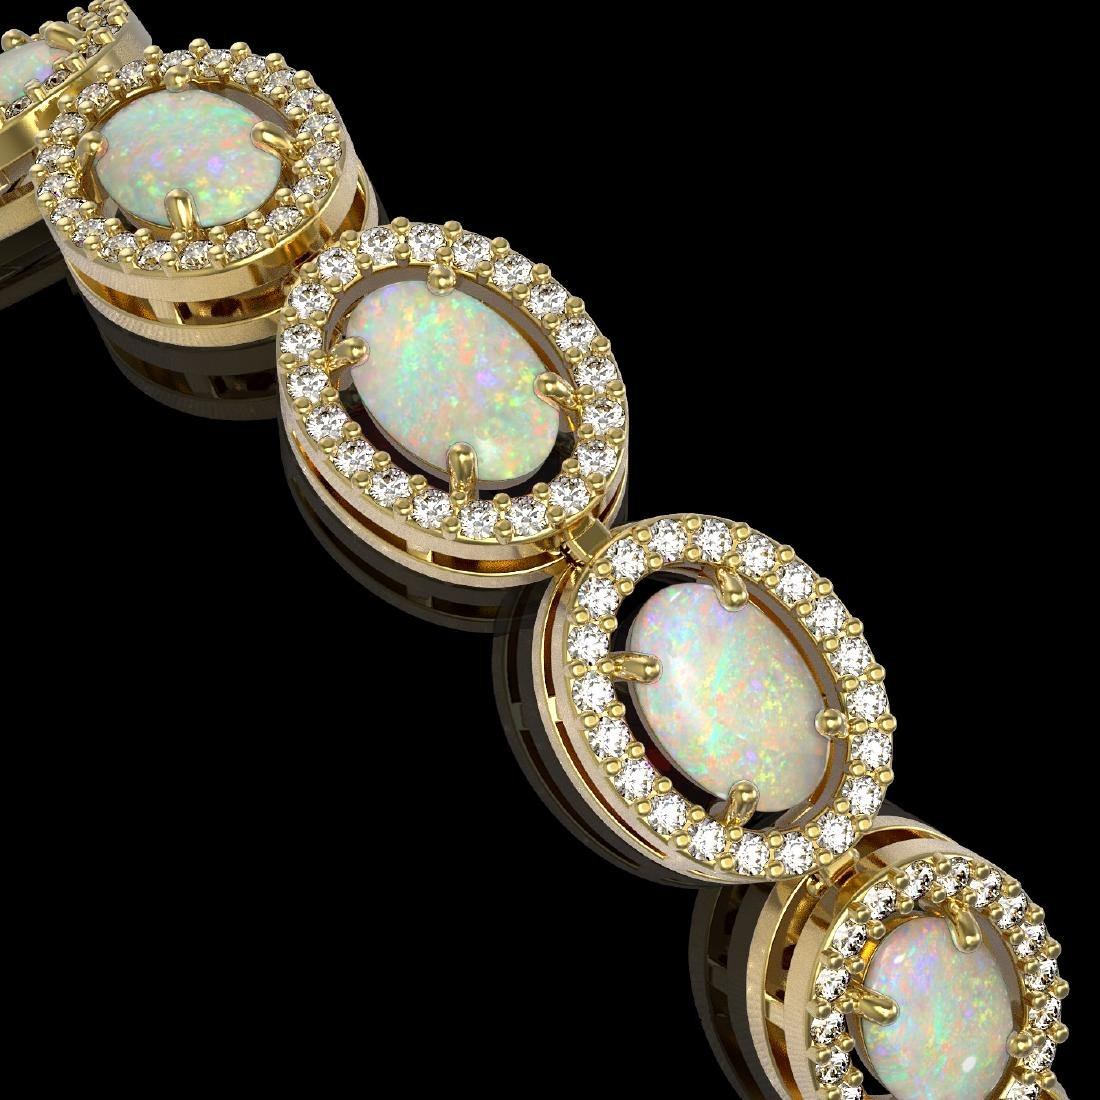 9.5 CTW Opal & Diamond Halo Bracelet 10K Yellow Gold - 2